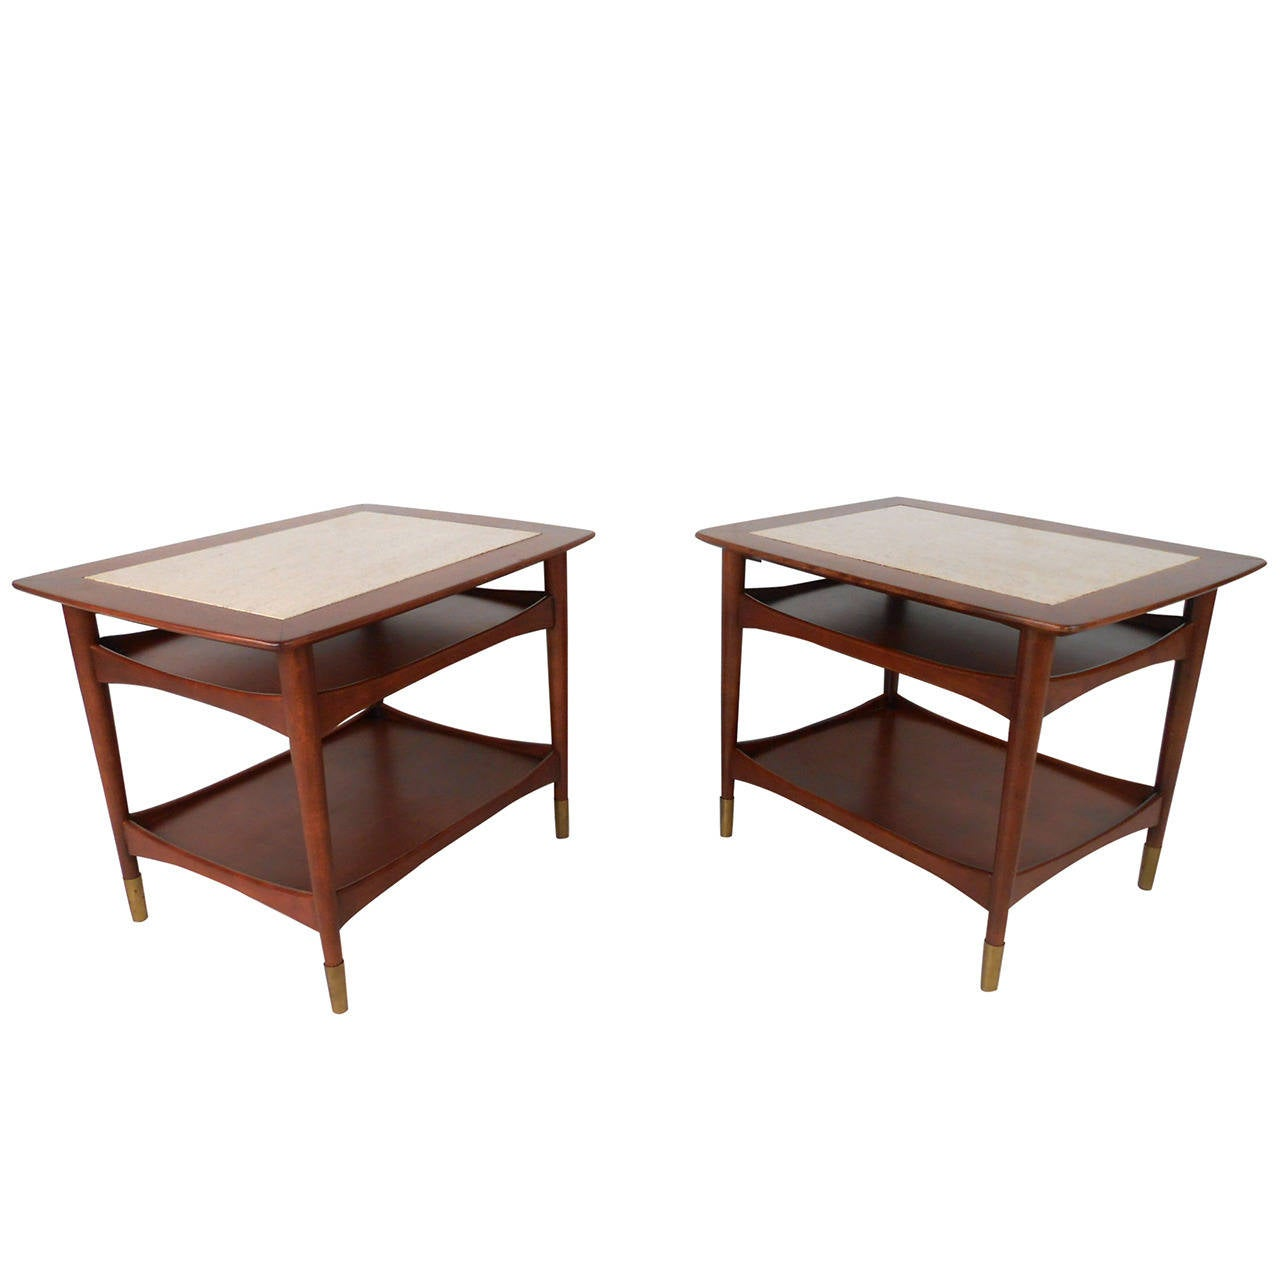 Unique mid century modern walnut and marble side tables for Unusual tables